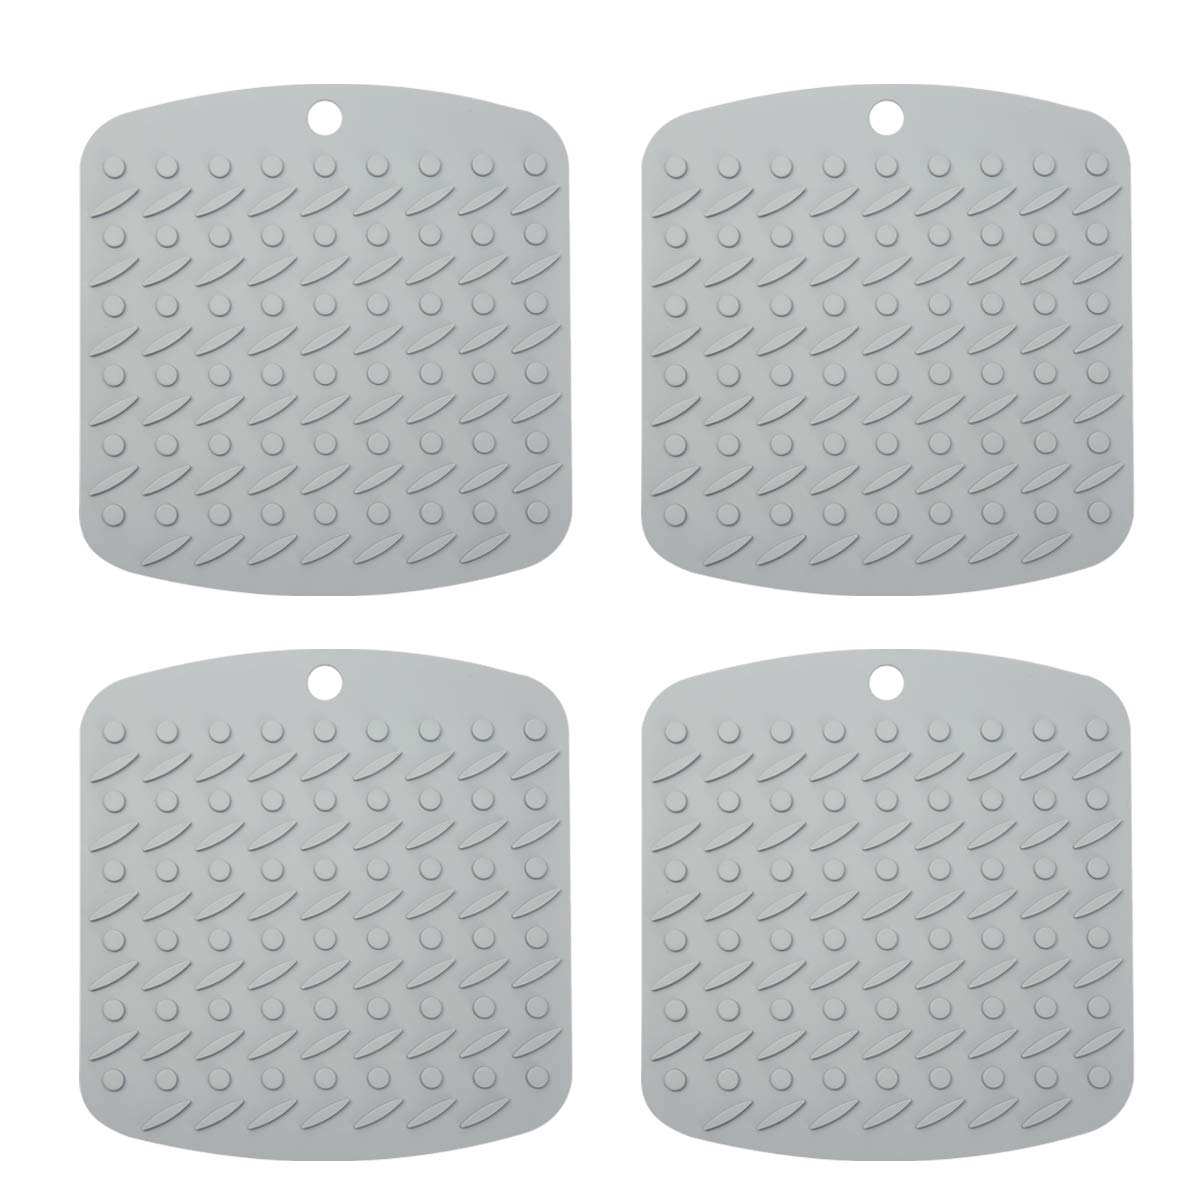 Premium Silicone Pot Holder Silicone Trivets for Hot Dishes, Spoon Rest Garlic Peeler Non Slip, Heat Resistant Hot Pads Potholders and Oven Mitts. Multipurpose Kitchen Tool 4 Pack Grey, 7x7""